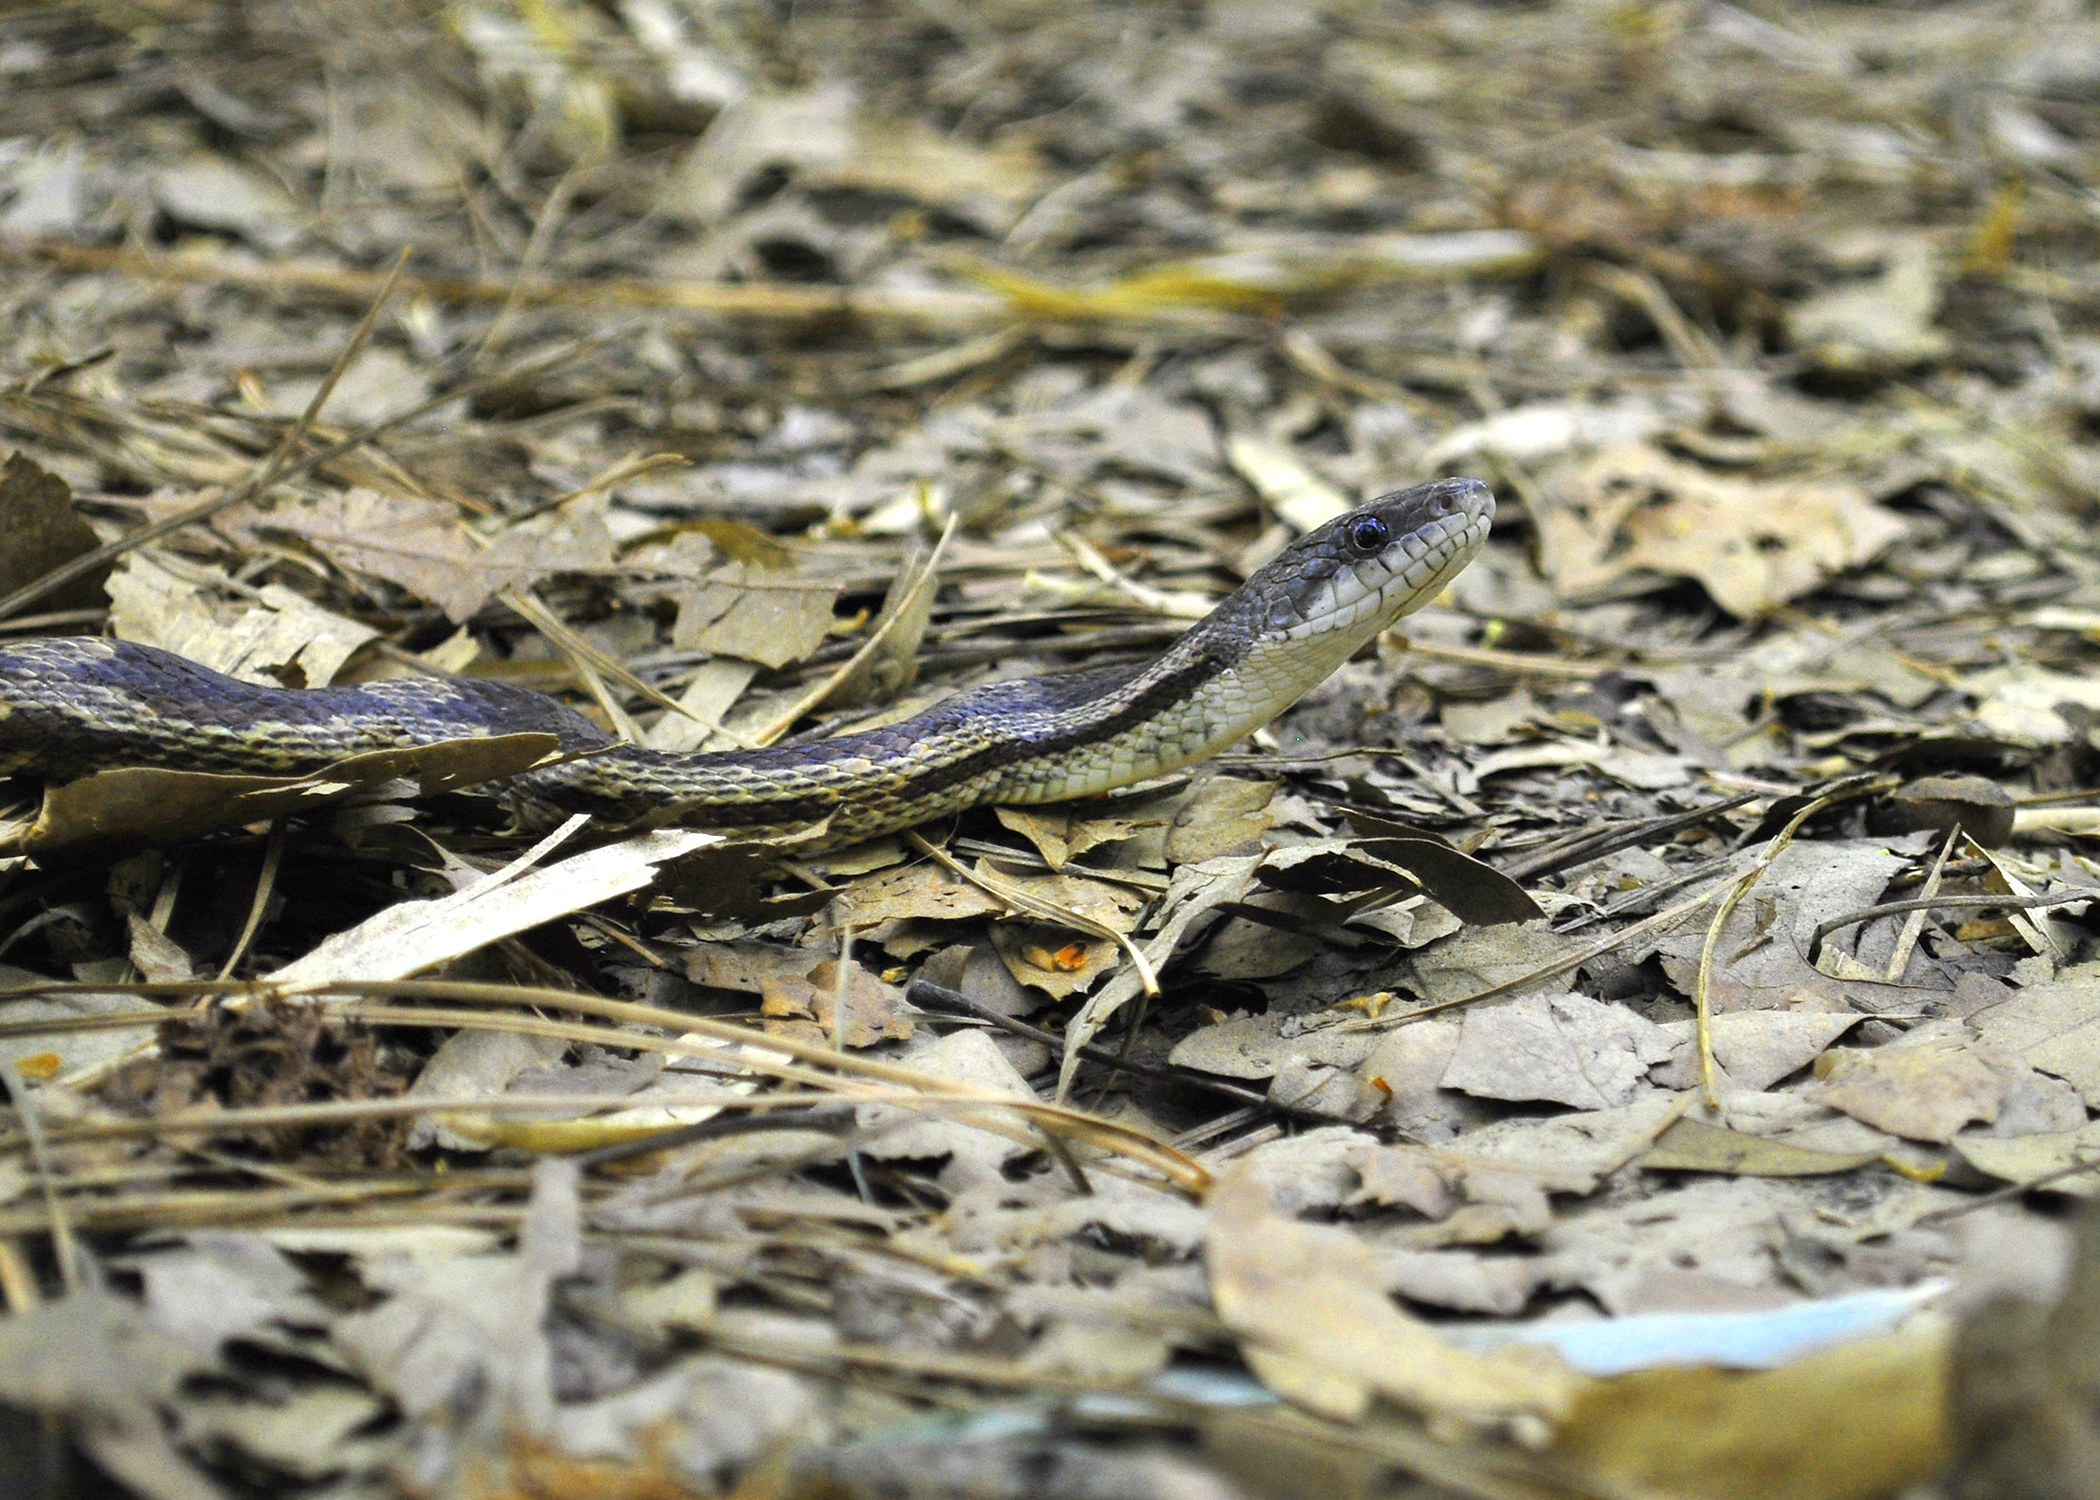 Most Mississippi snakes are beneficial, not deadly | Mississippi